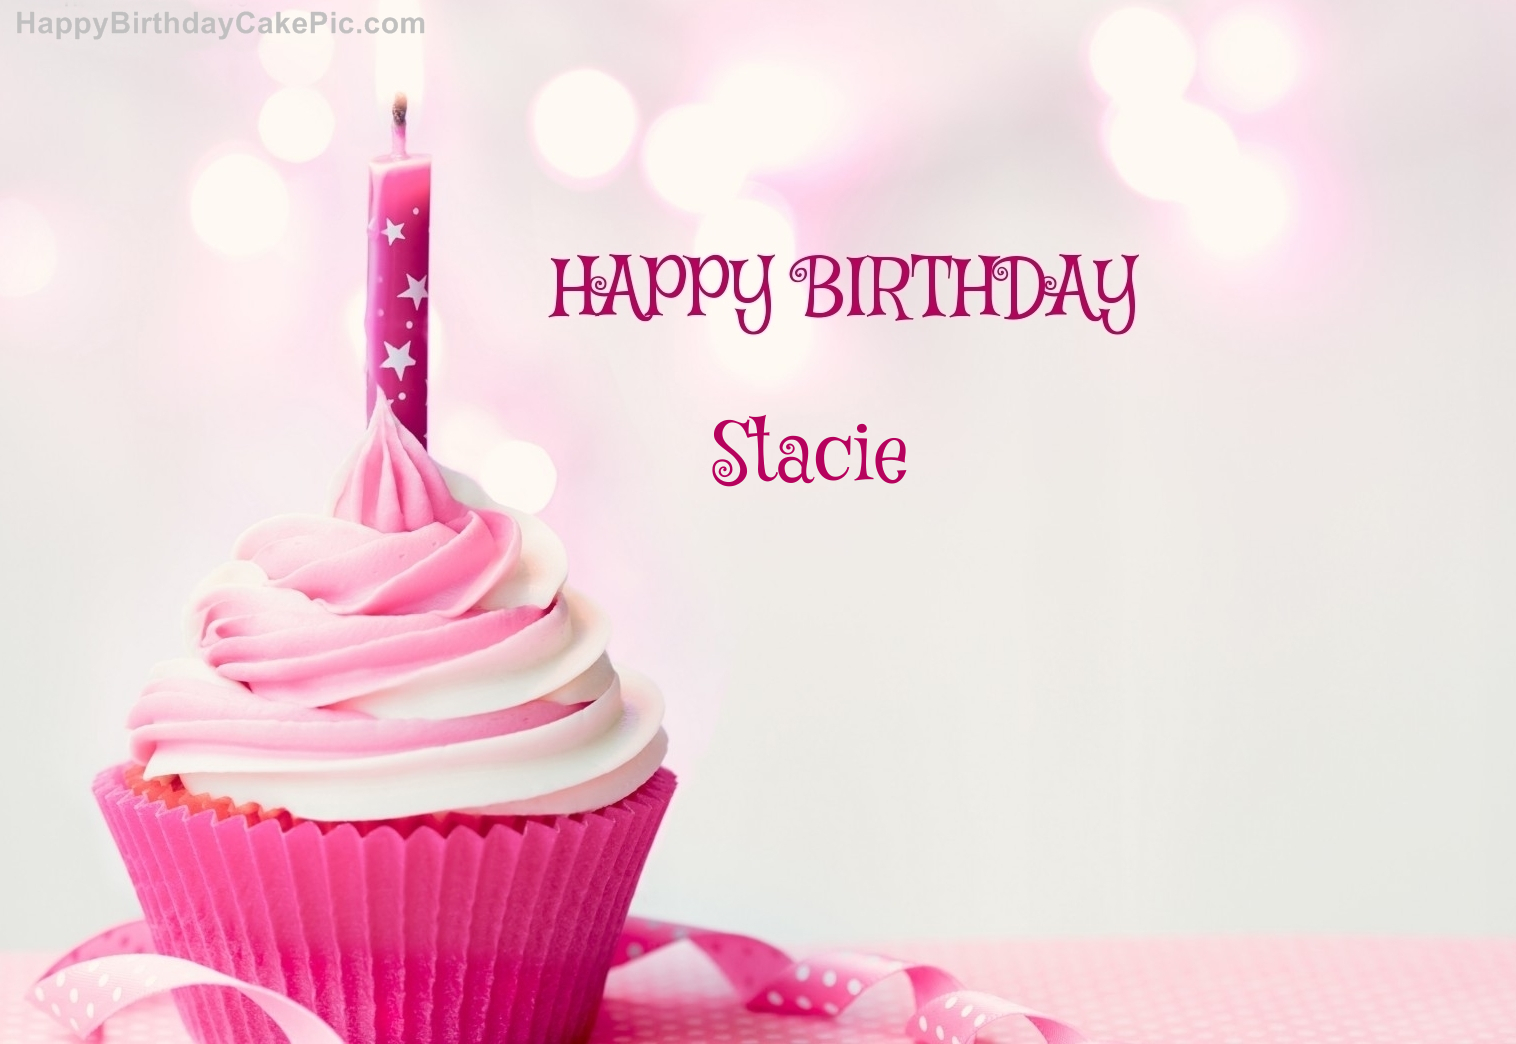 Happy Birthday Cupcake Candle Pink Cake For Stacie